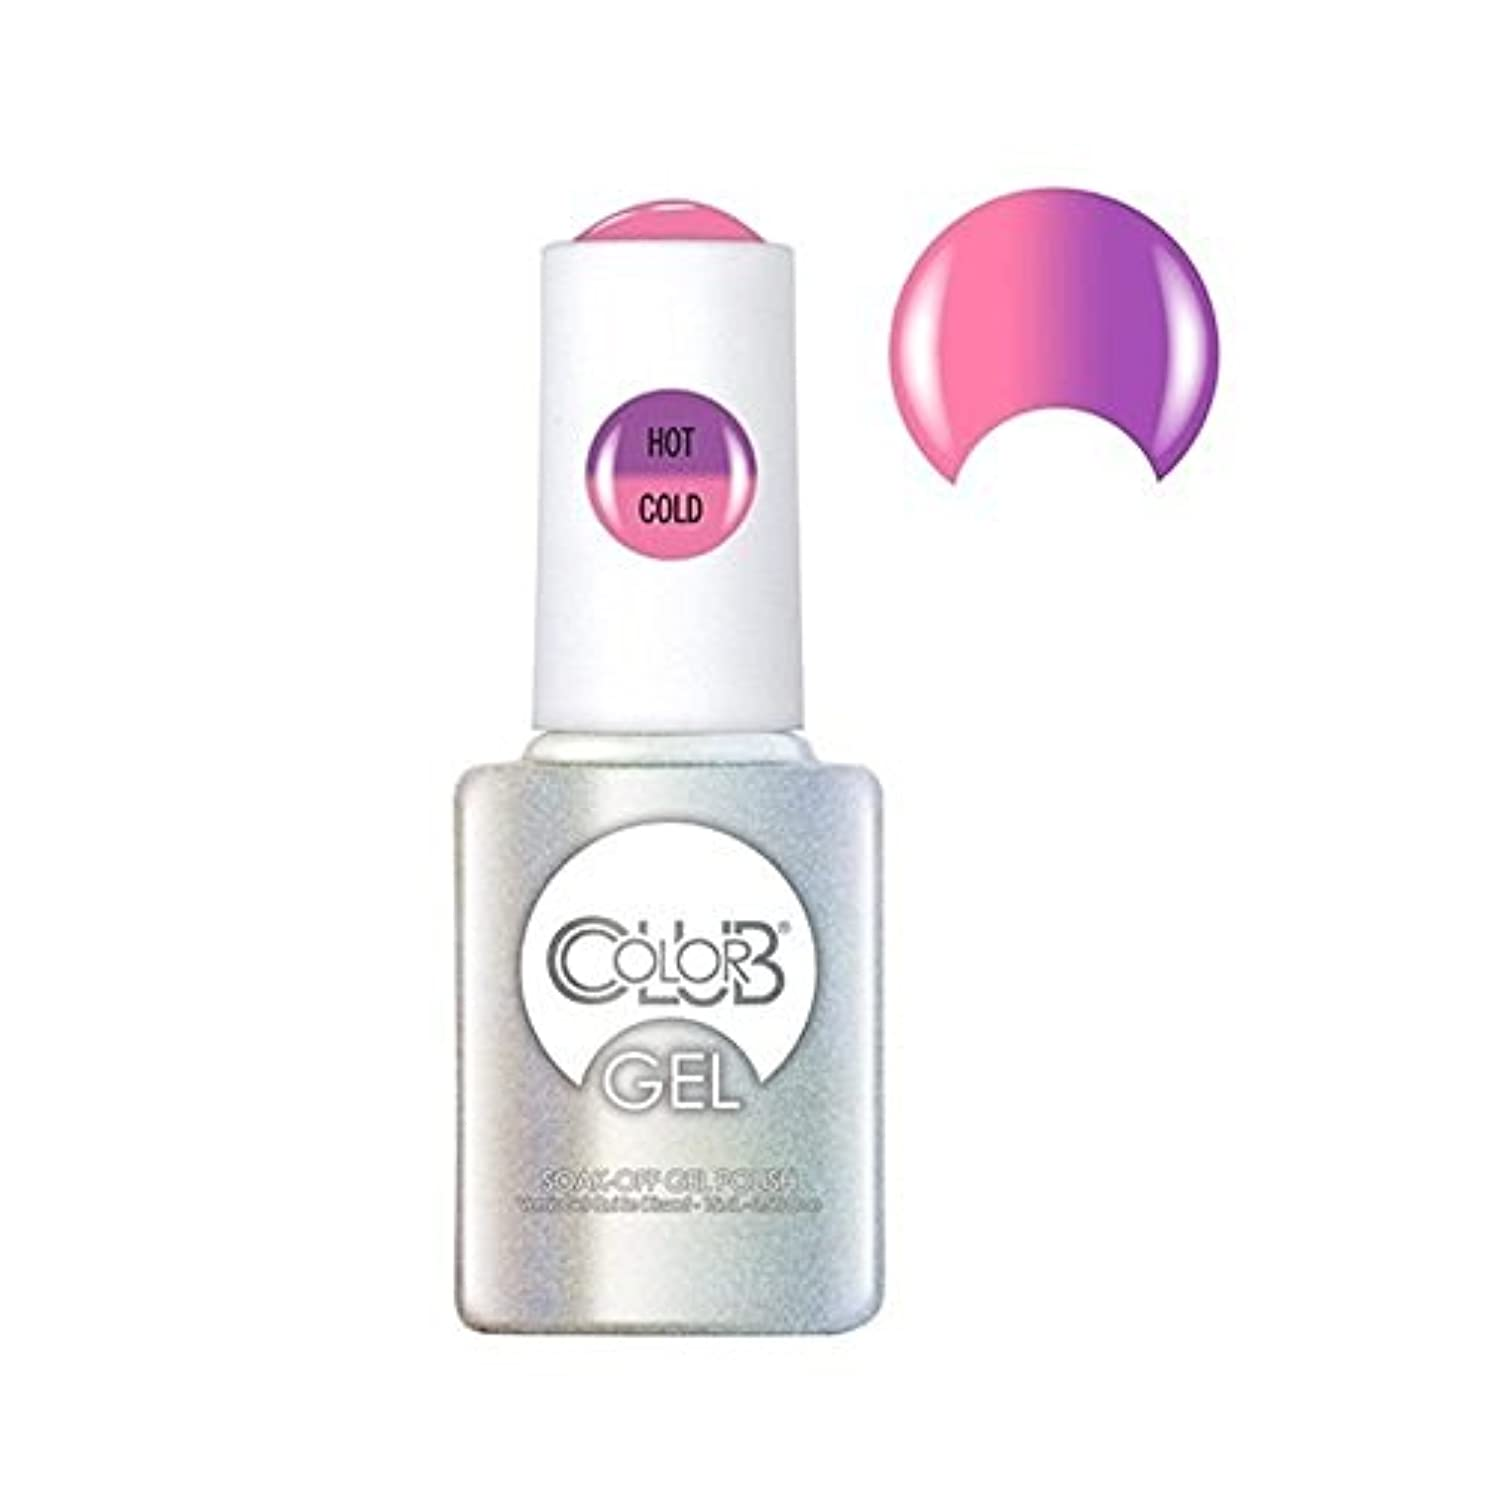 Color Club Gel Polish - Feelin' Myself - 0.5oz / 15ml